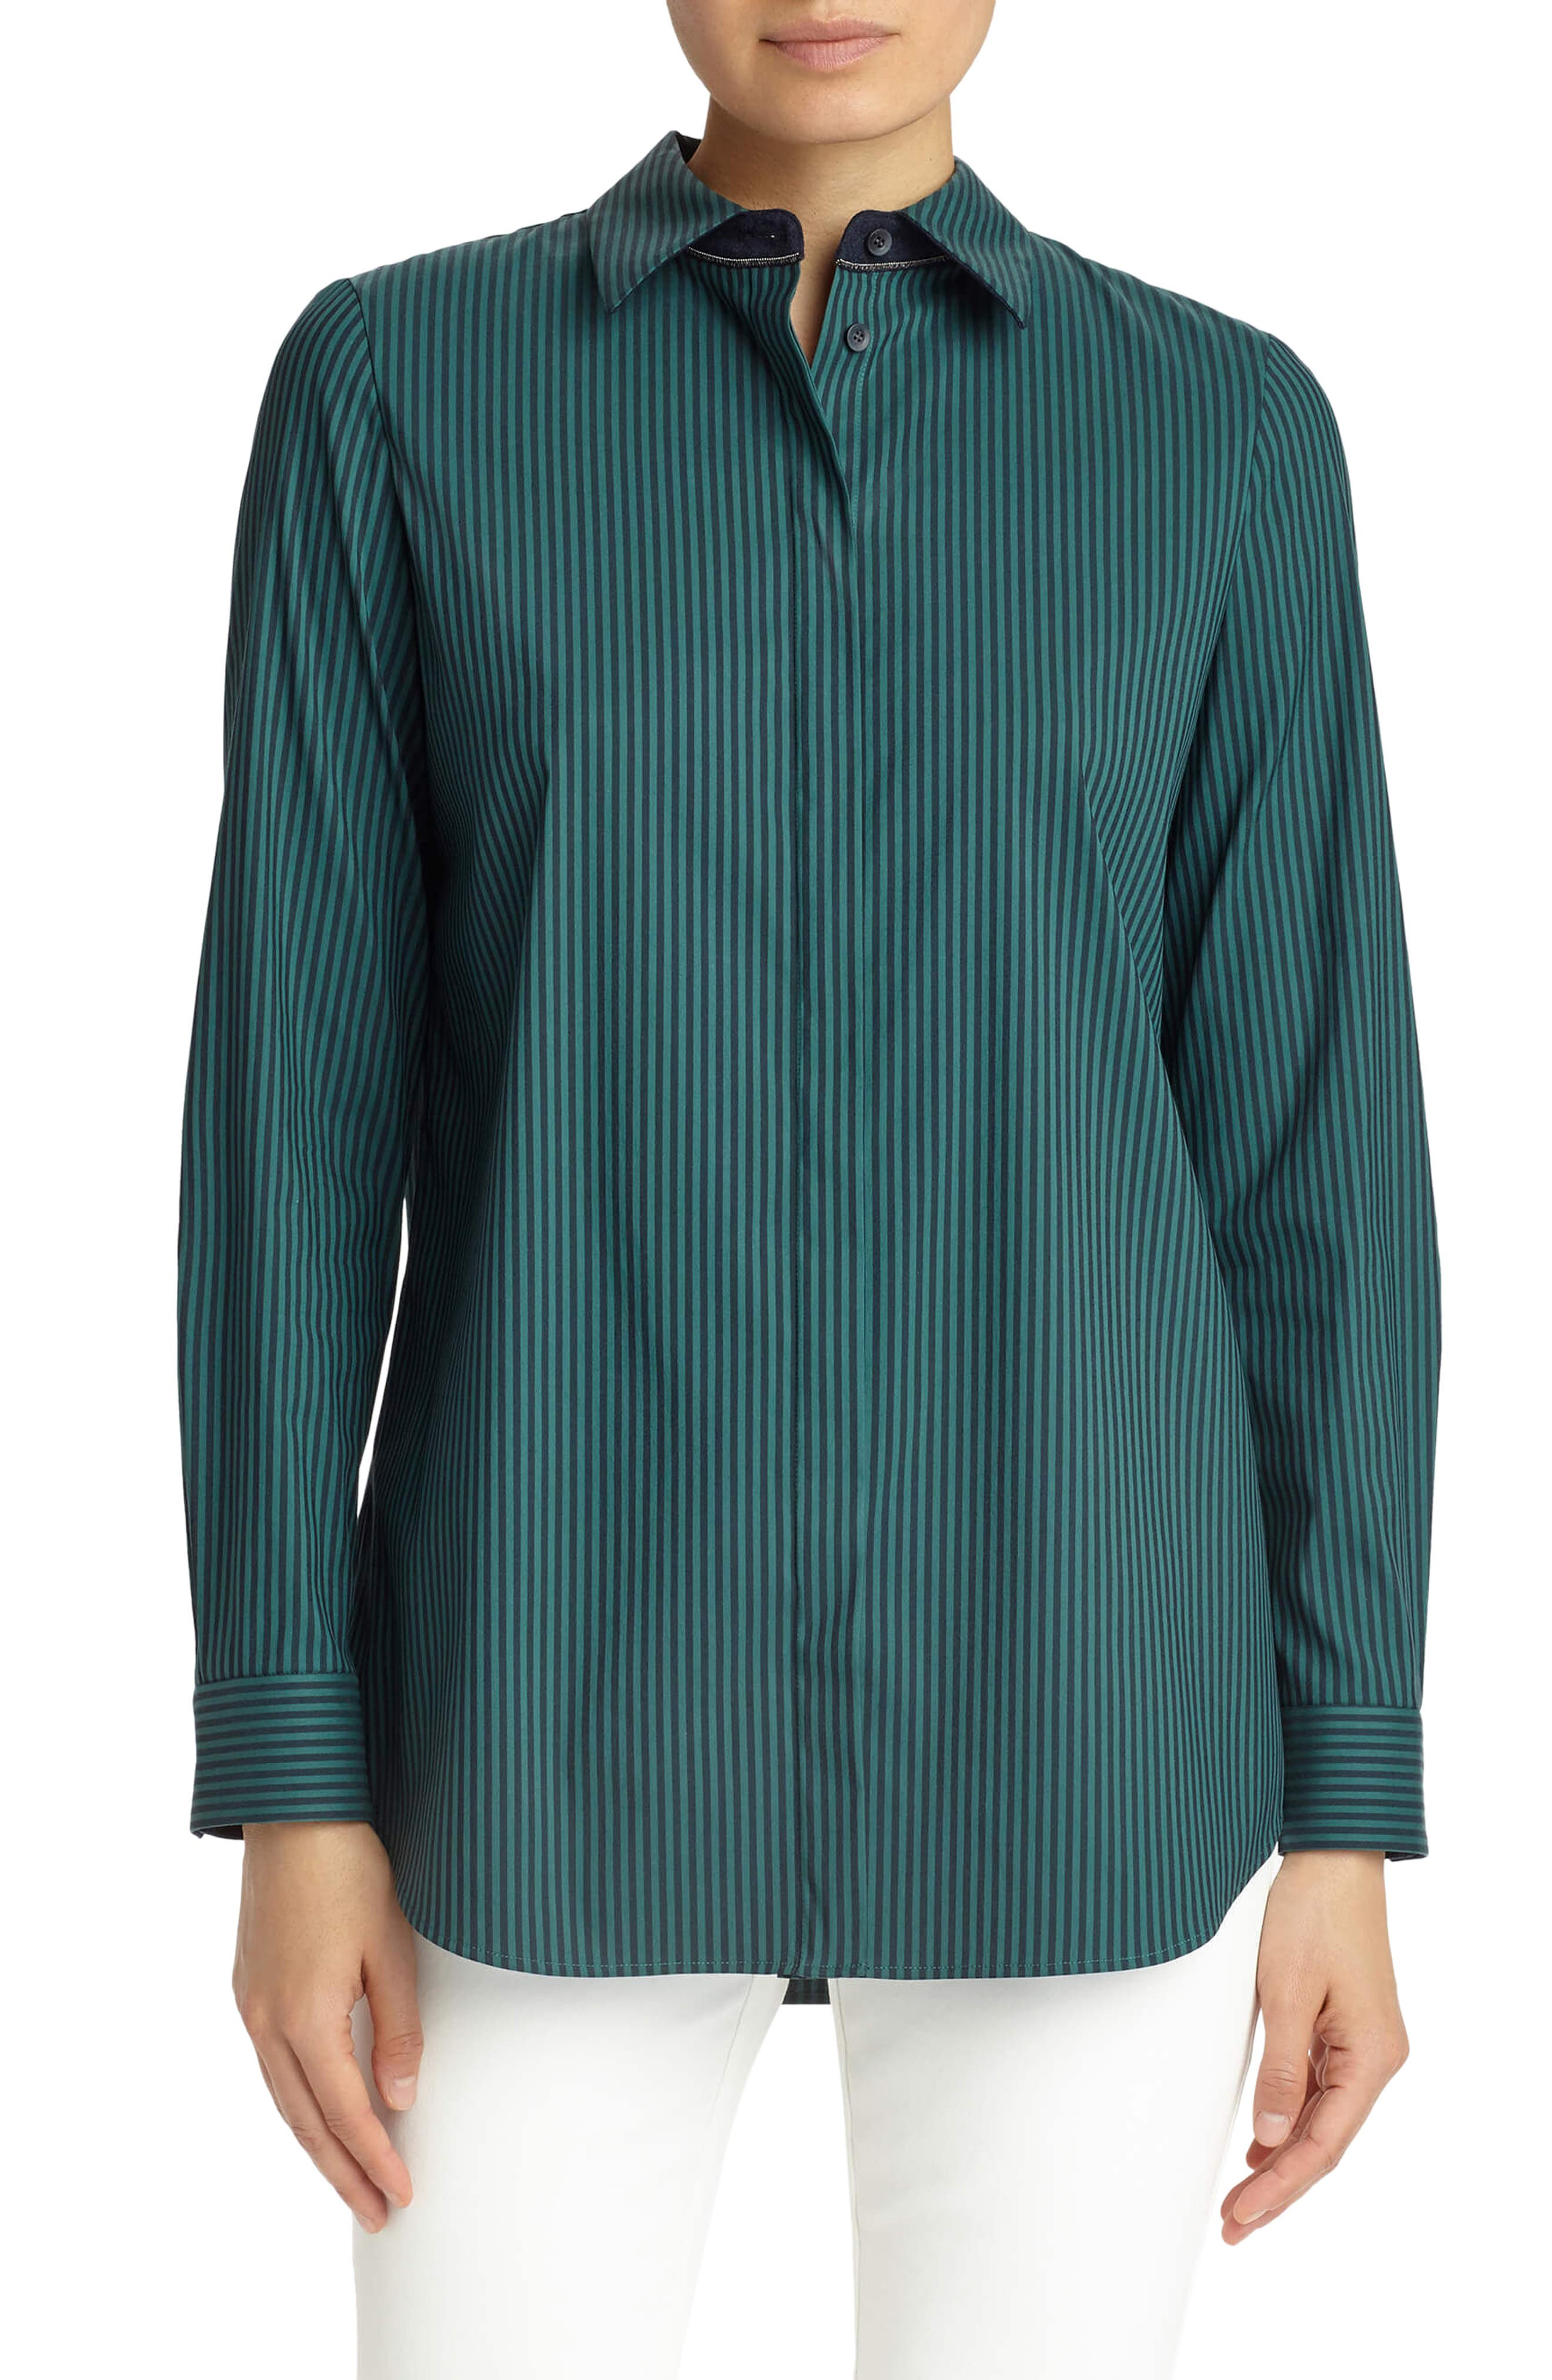 Lafayette 148 New York 'Brody - Palace Stripe' Blouse